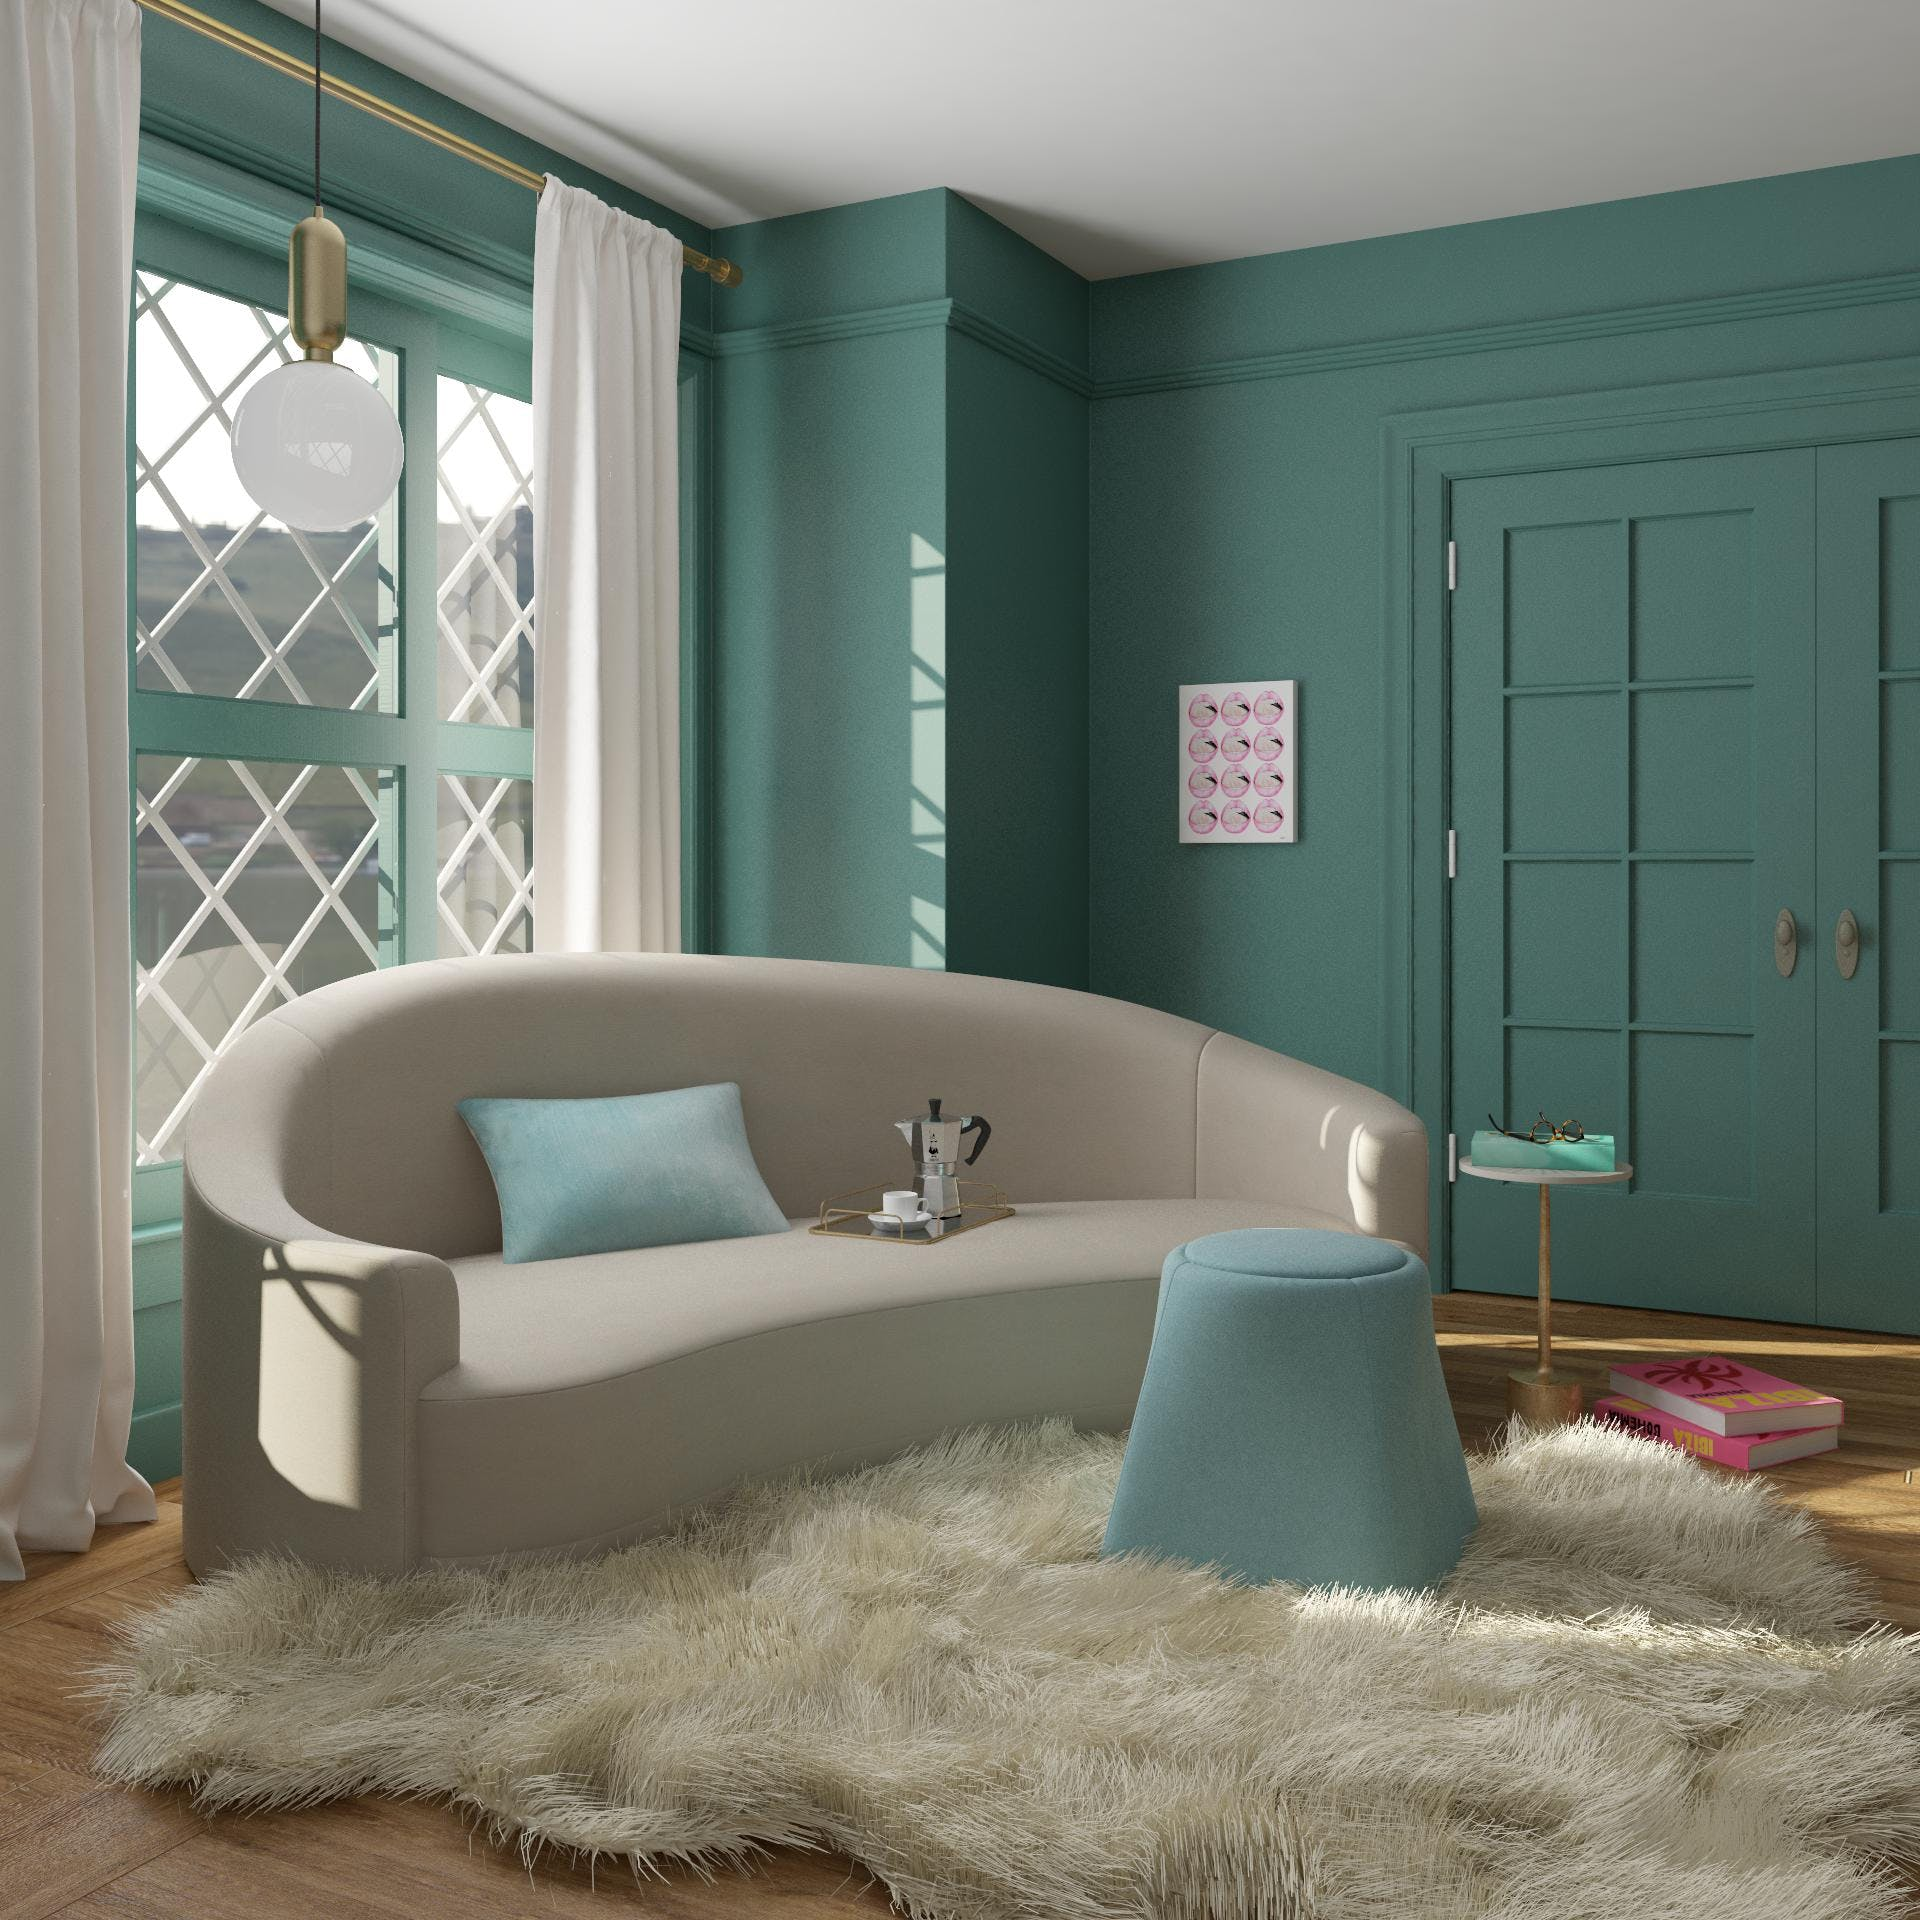 A Reading Nook Fit For Tiffany's